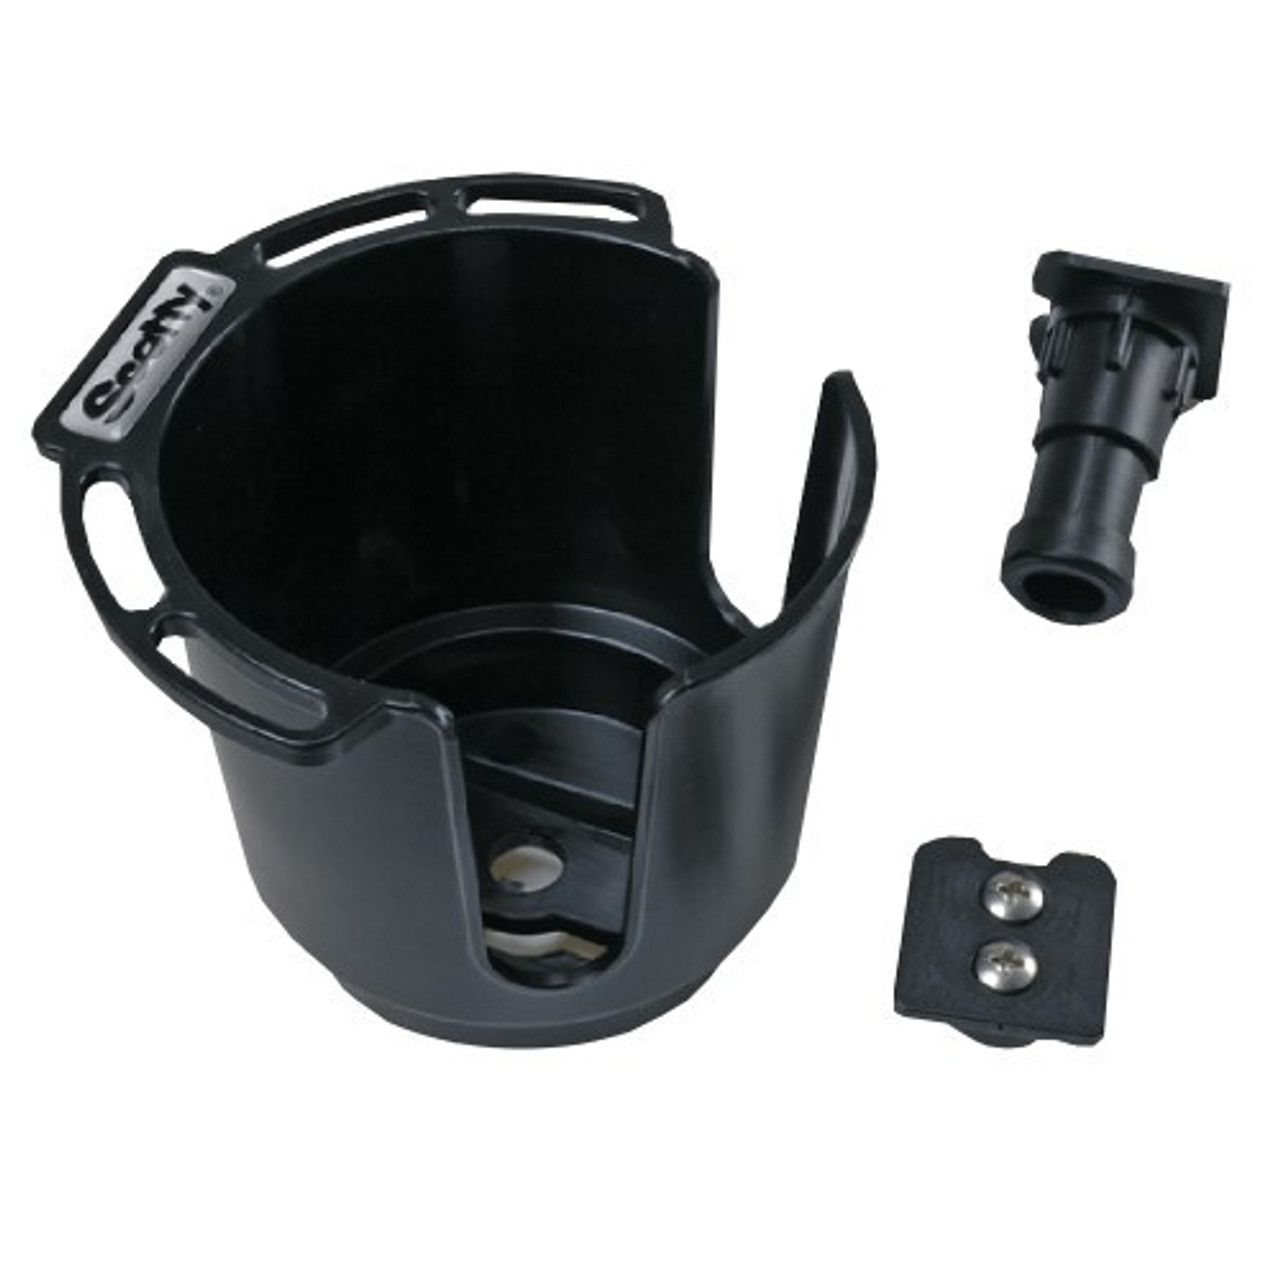 Scotty 311 Cup Holder